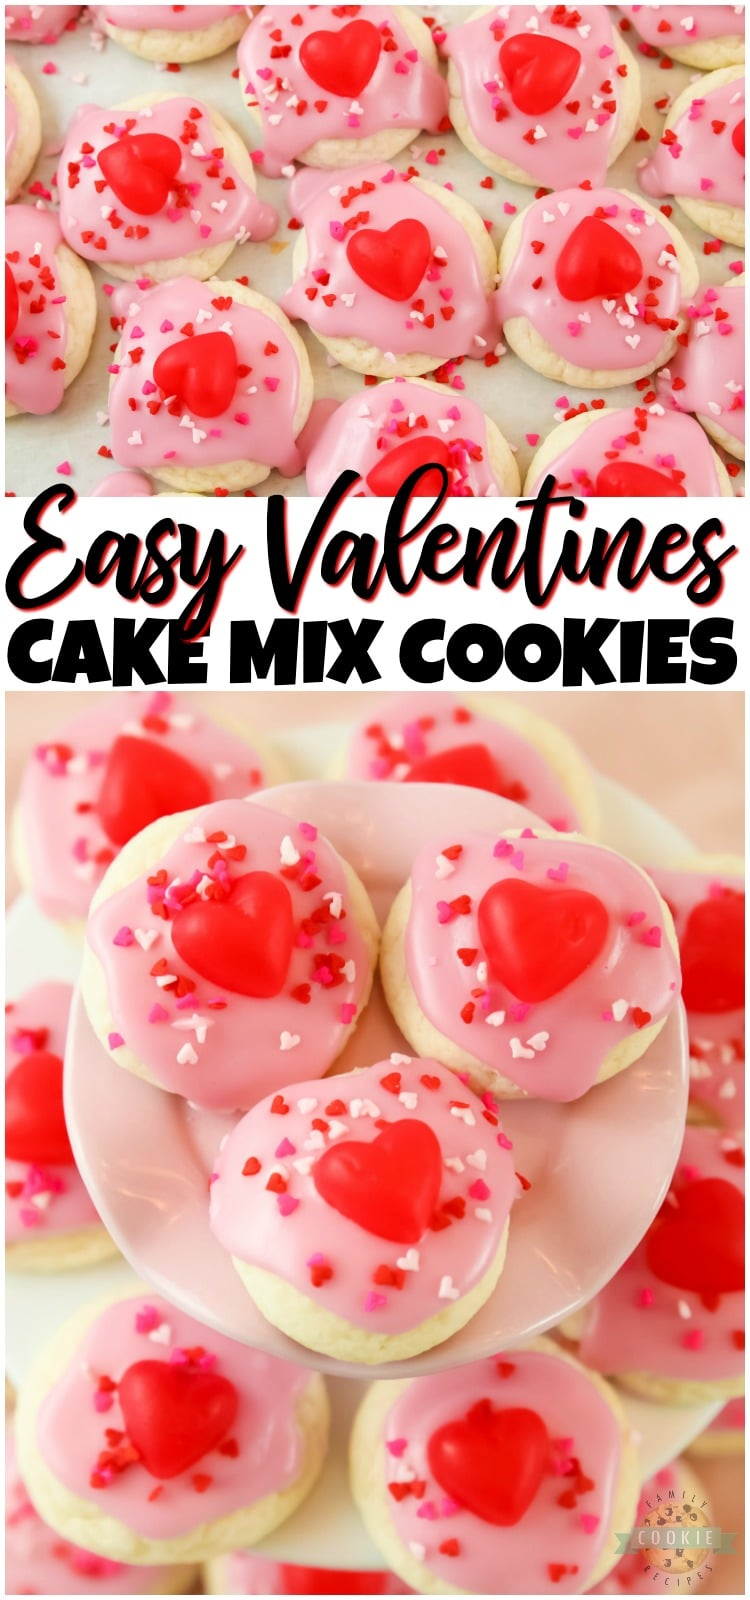 Valentines Cake Mix Cookies made with just 3 ingredients in under 30 minutes! Quick & Easy Valentines dessert recipe for your special someone! #Valentines #cookies #baking #frosting #sprinkles #ValentinesDay #recipe from FAMILY COOKIE RECIPES via @familycookierecipes